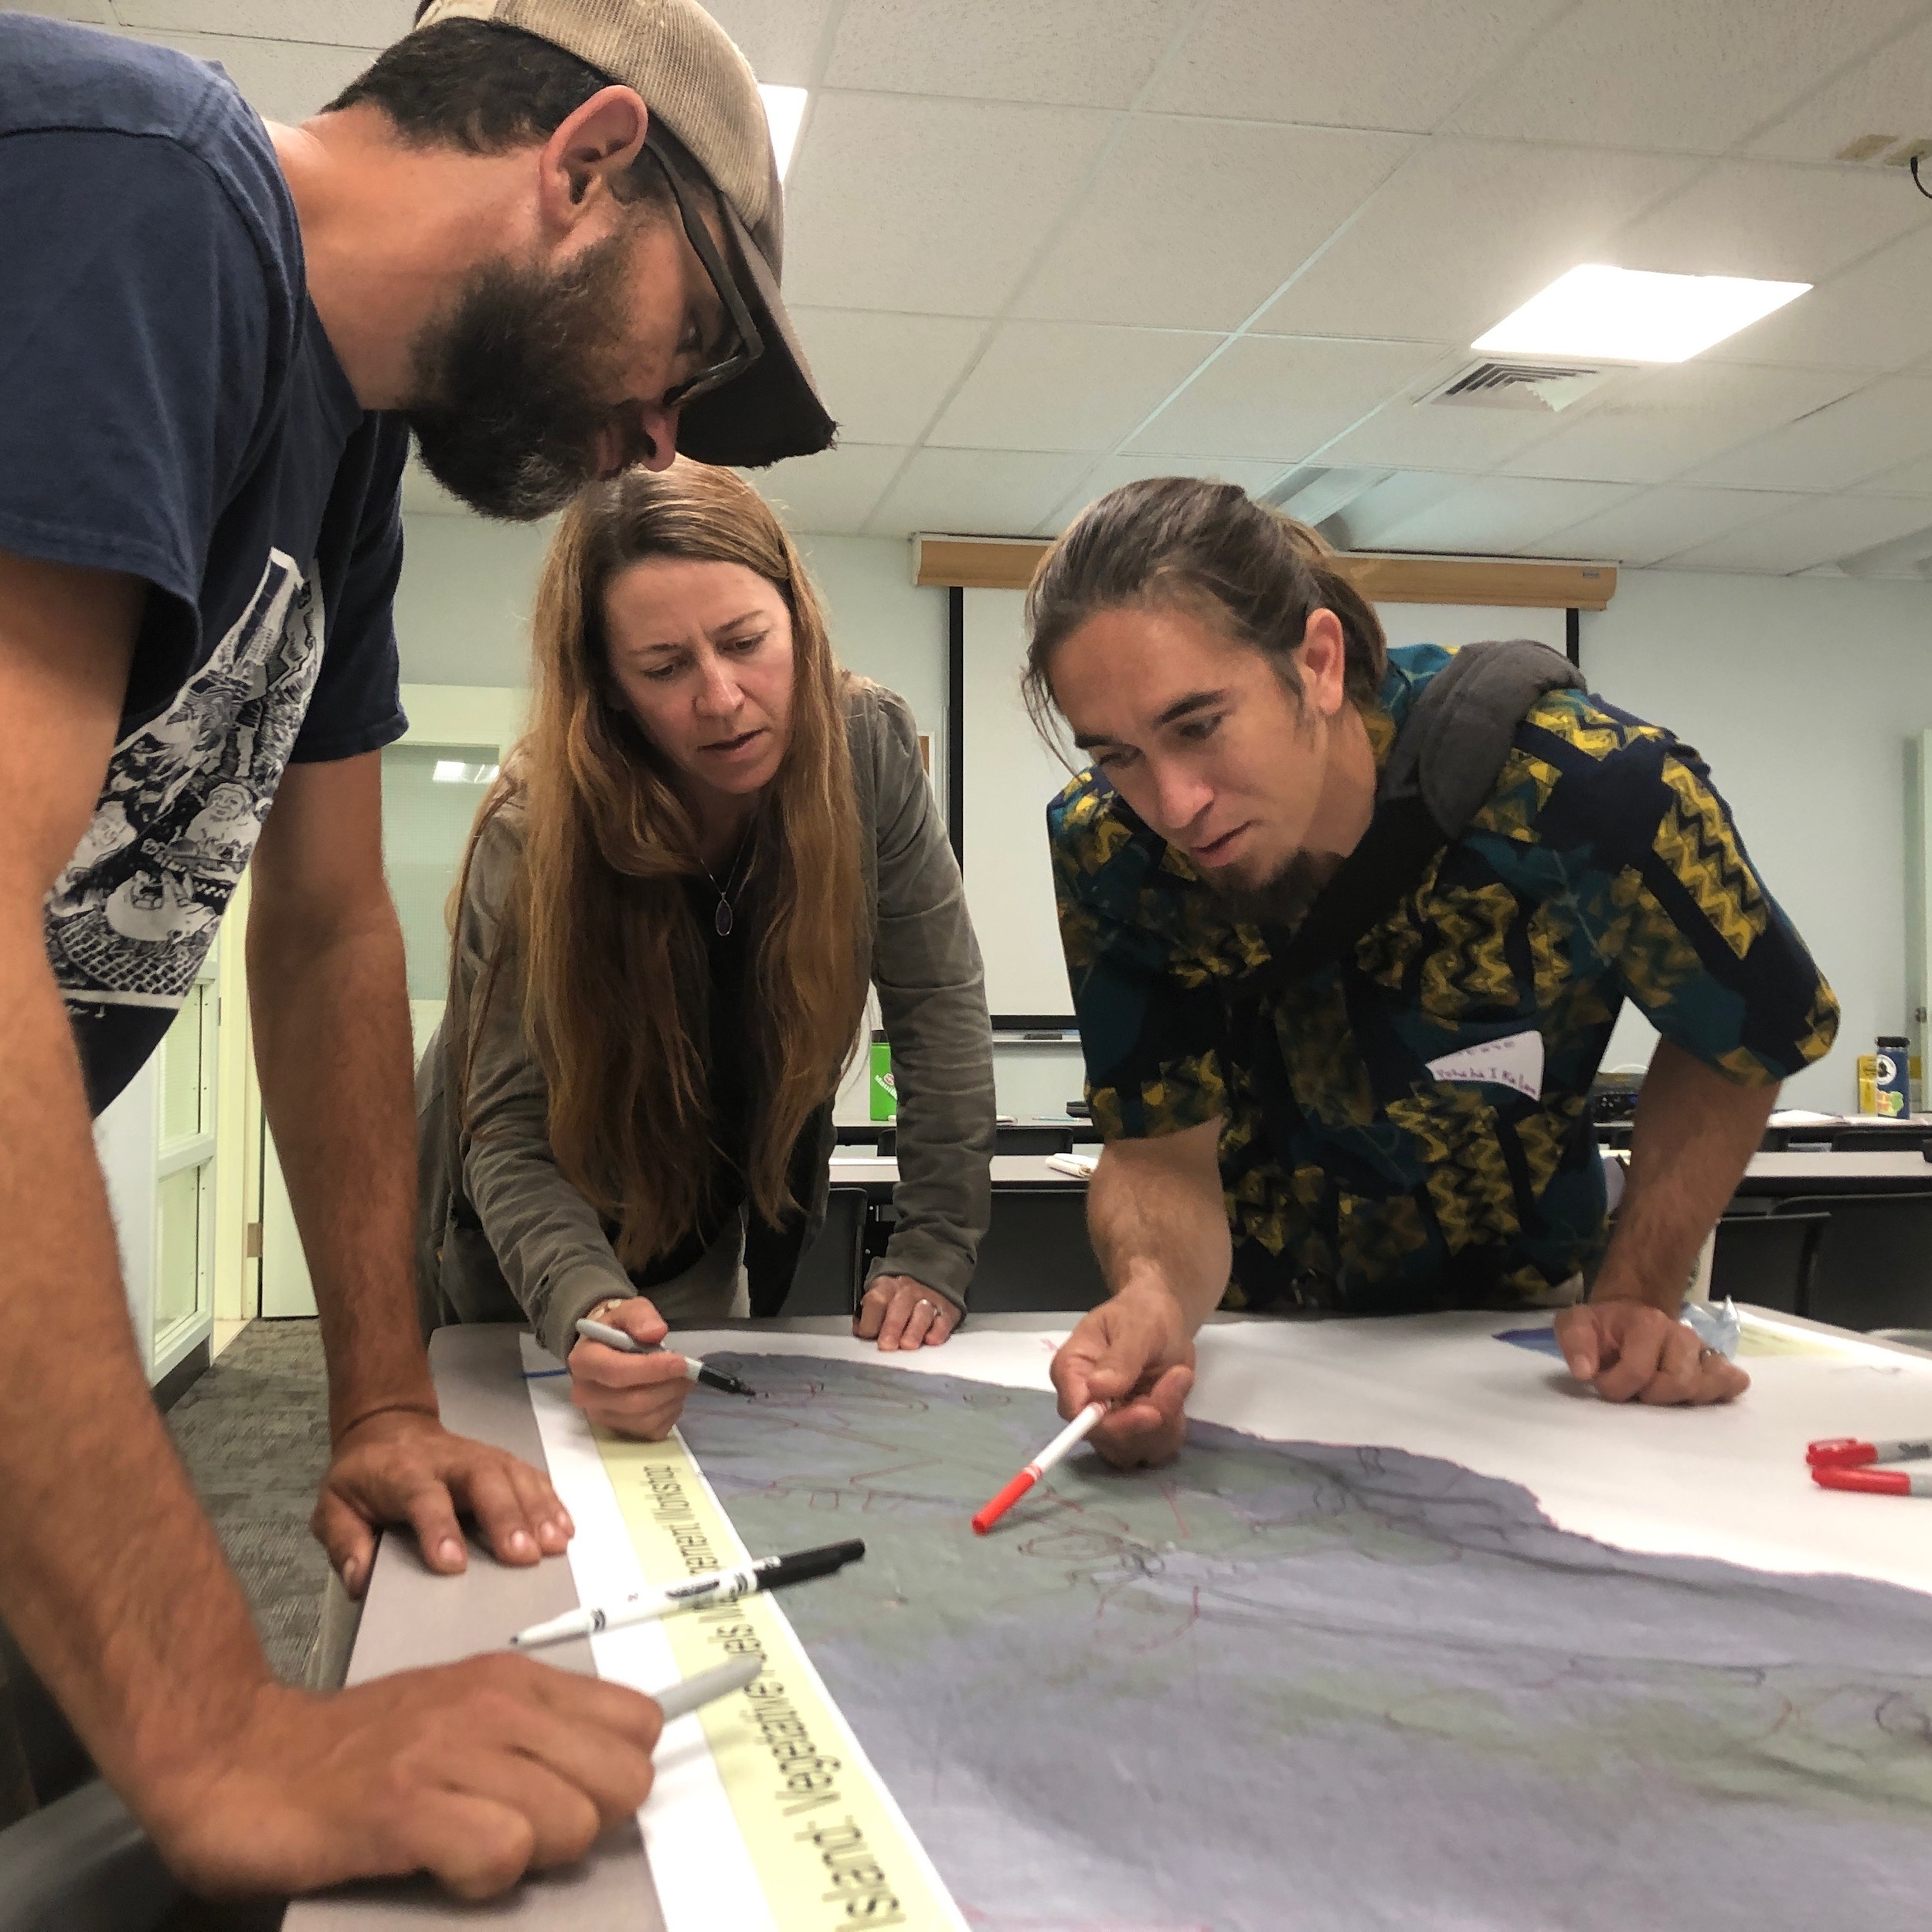 Hawaii Island Hilo Vegetative Fuels Management Collaborative Action Planning Workshop_2_22_2019_23.jpg